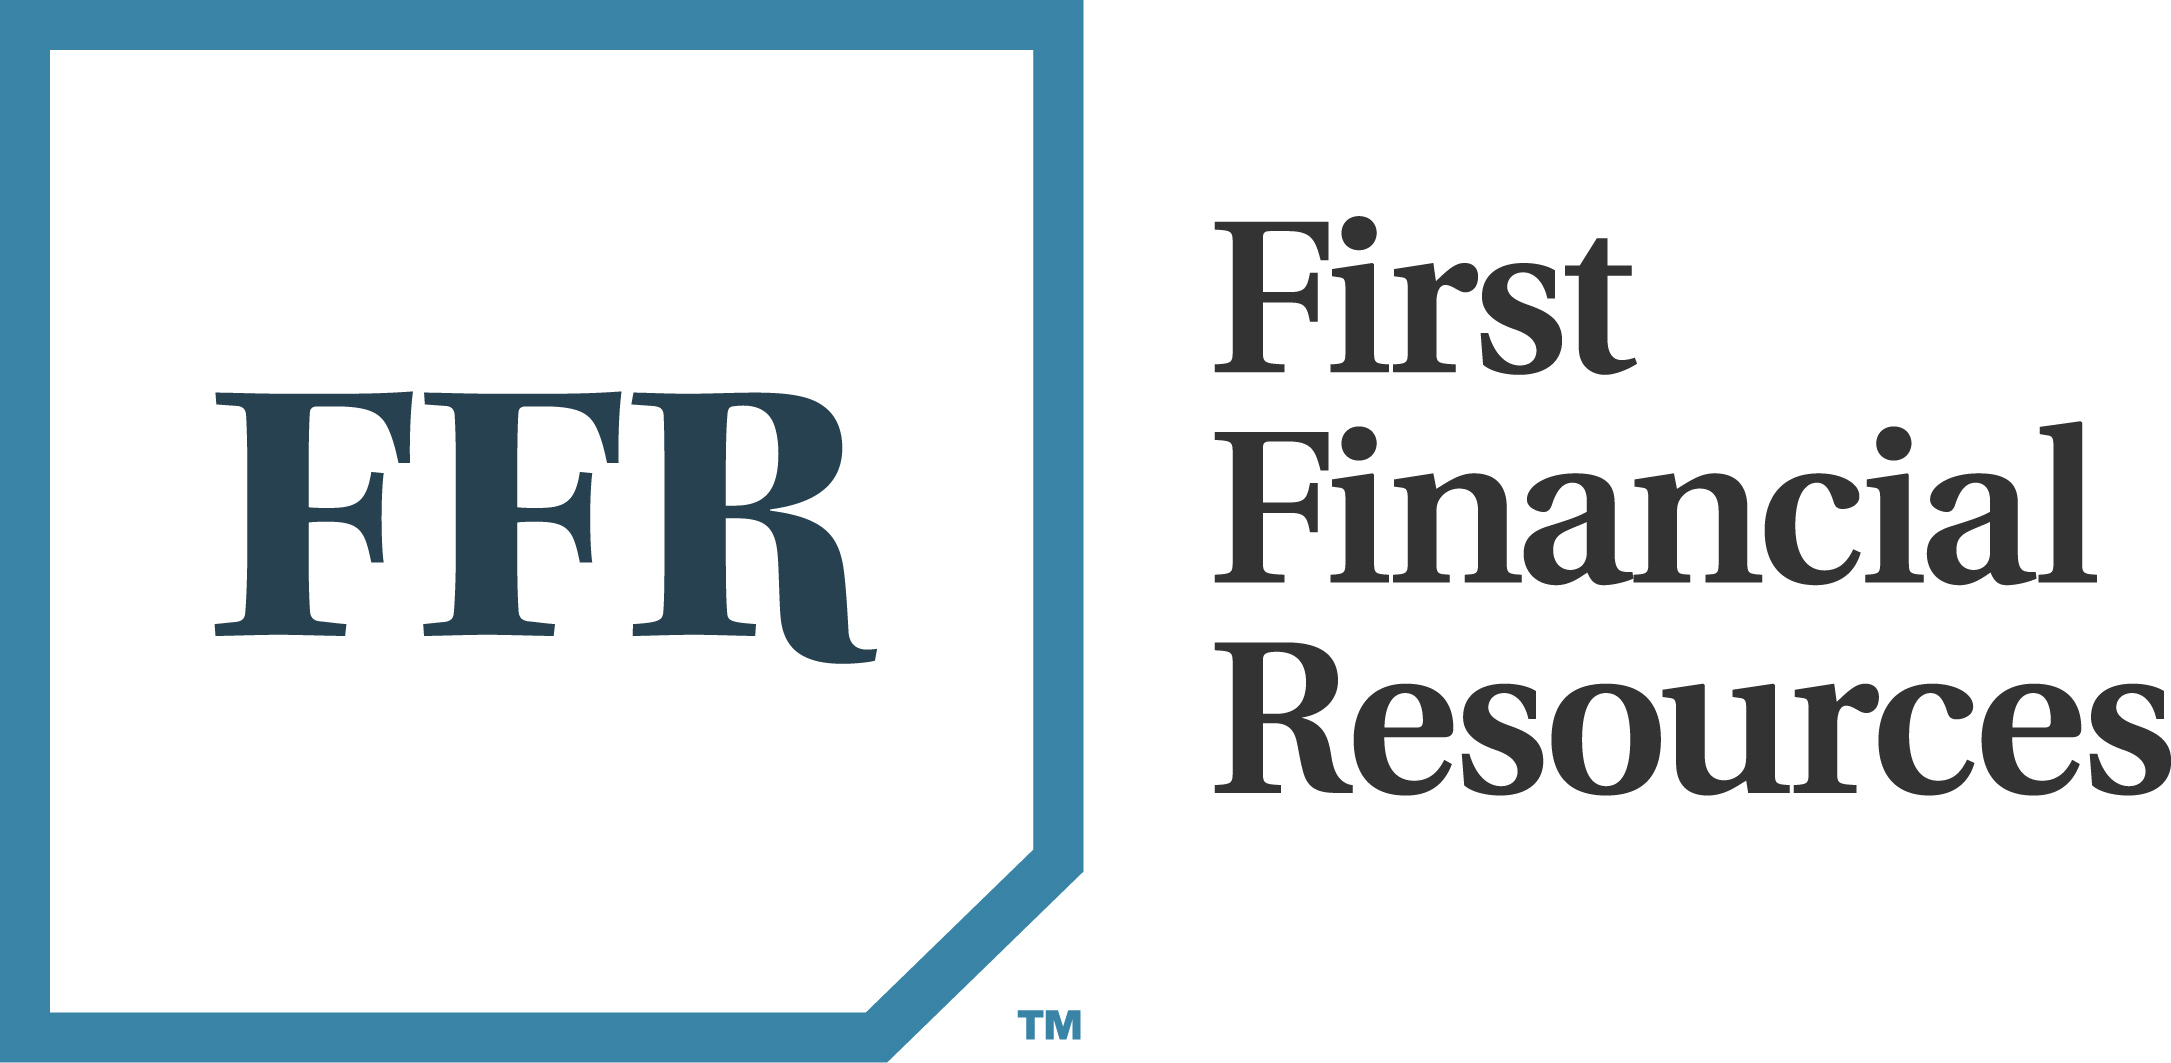 First Financial Resources, Irvine, CA